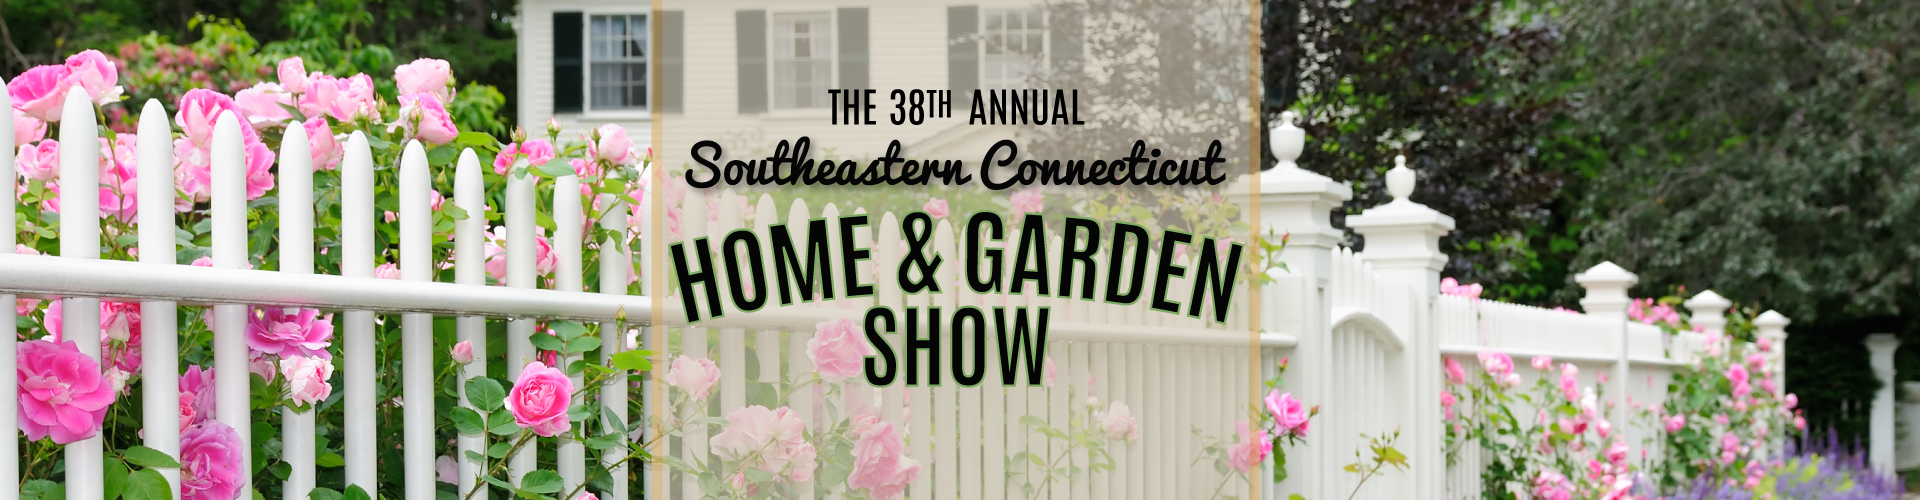 SOUTHEASTERN CT HOME SHOW